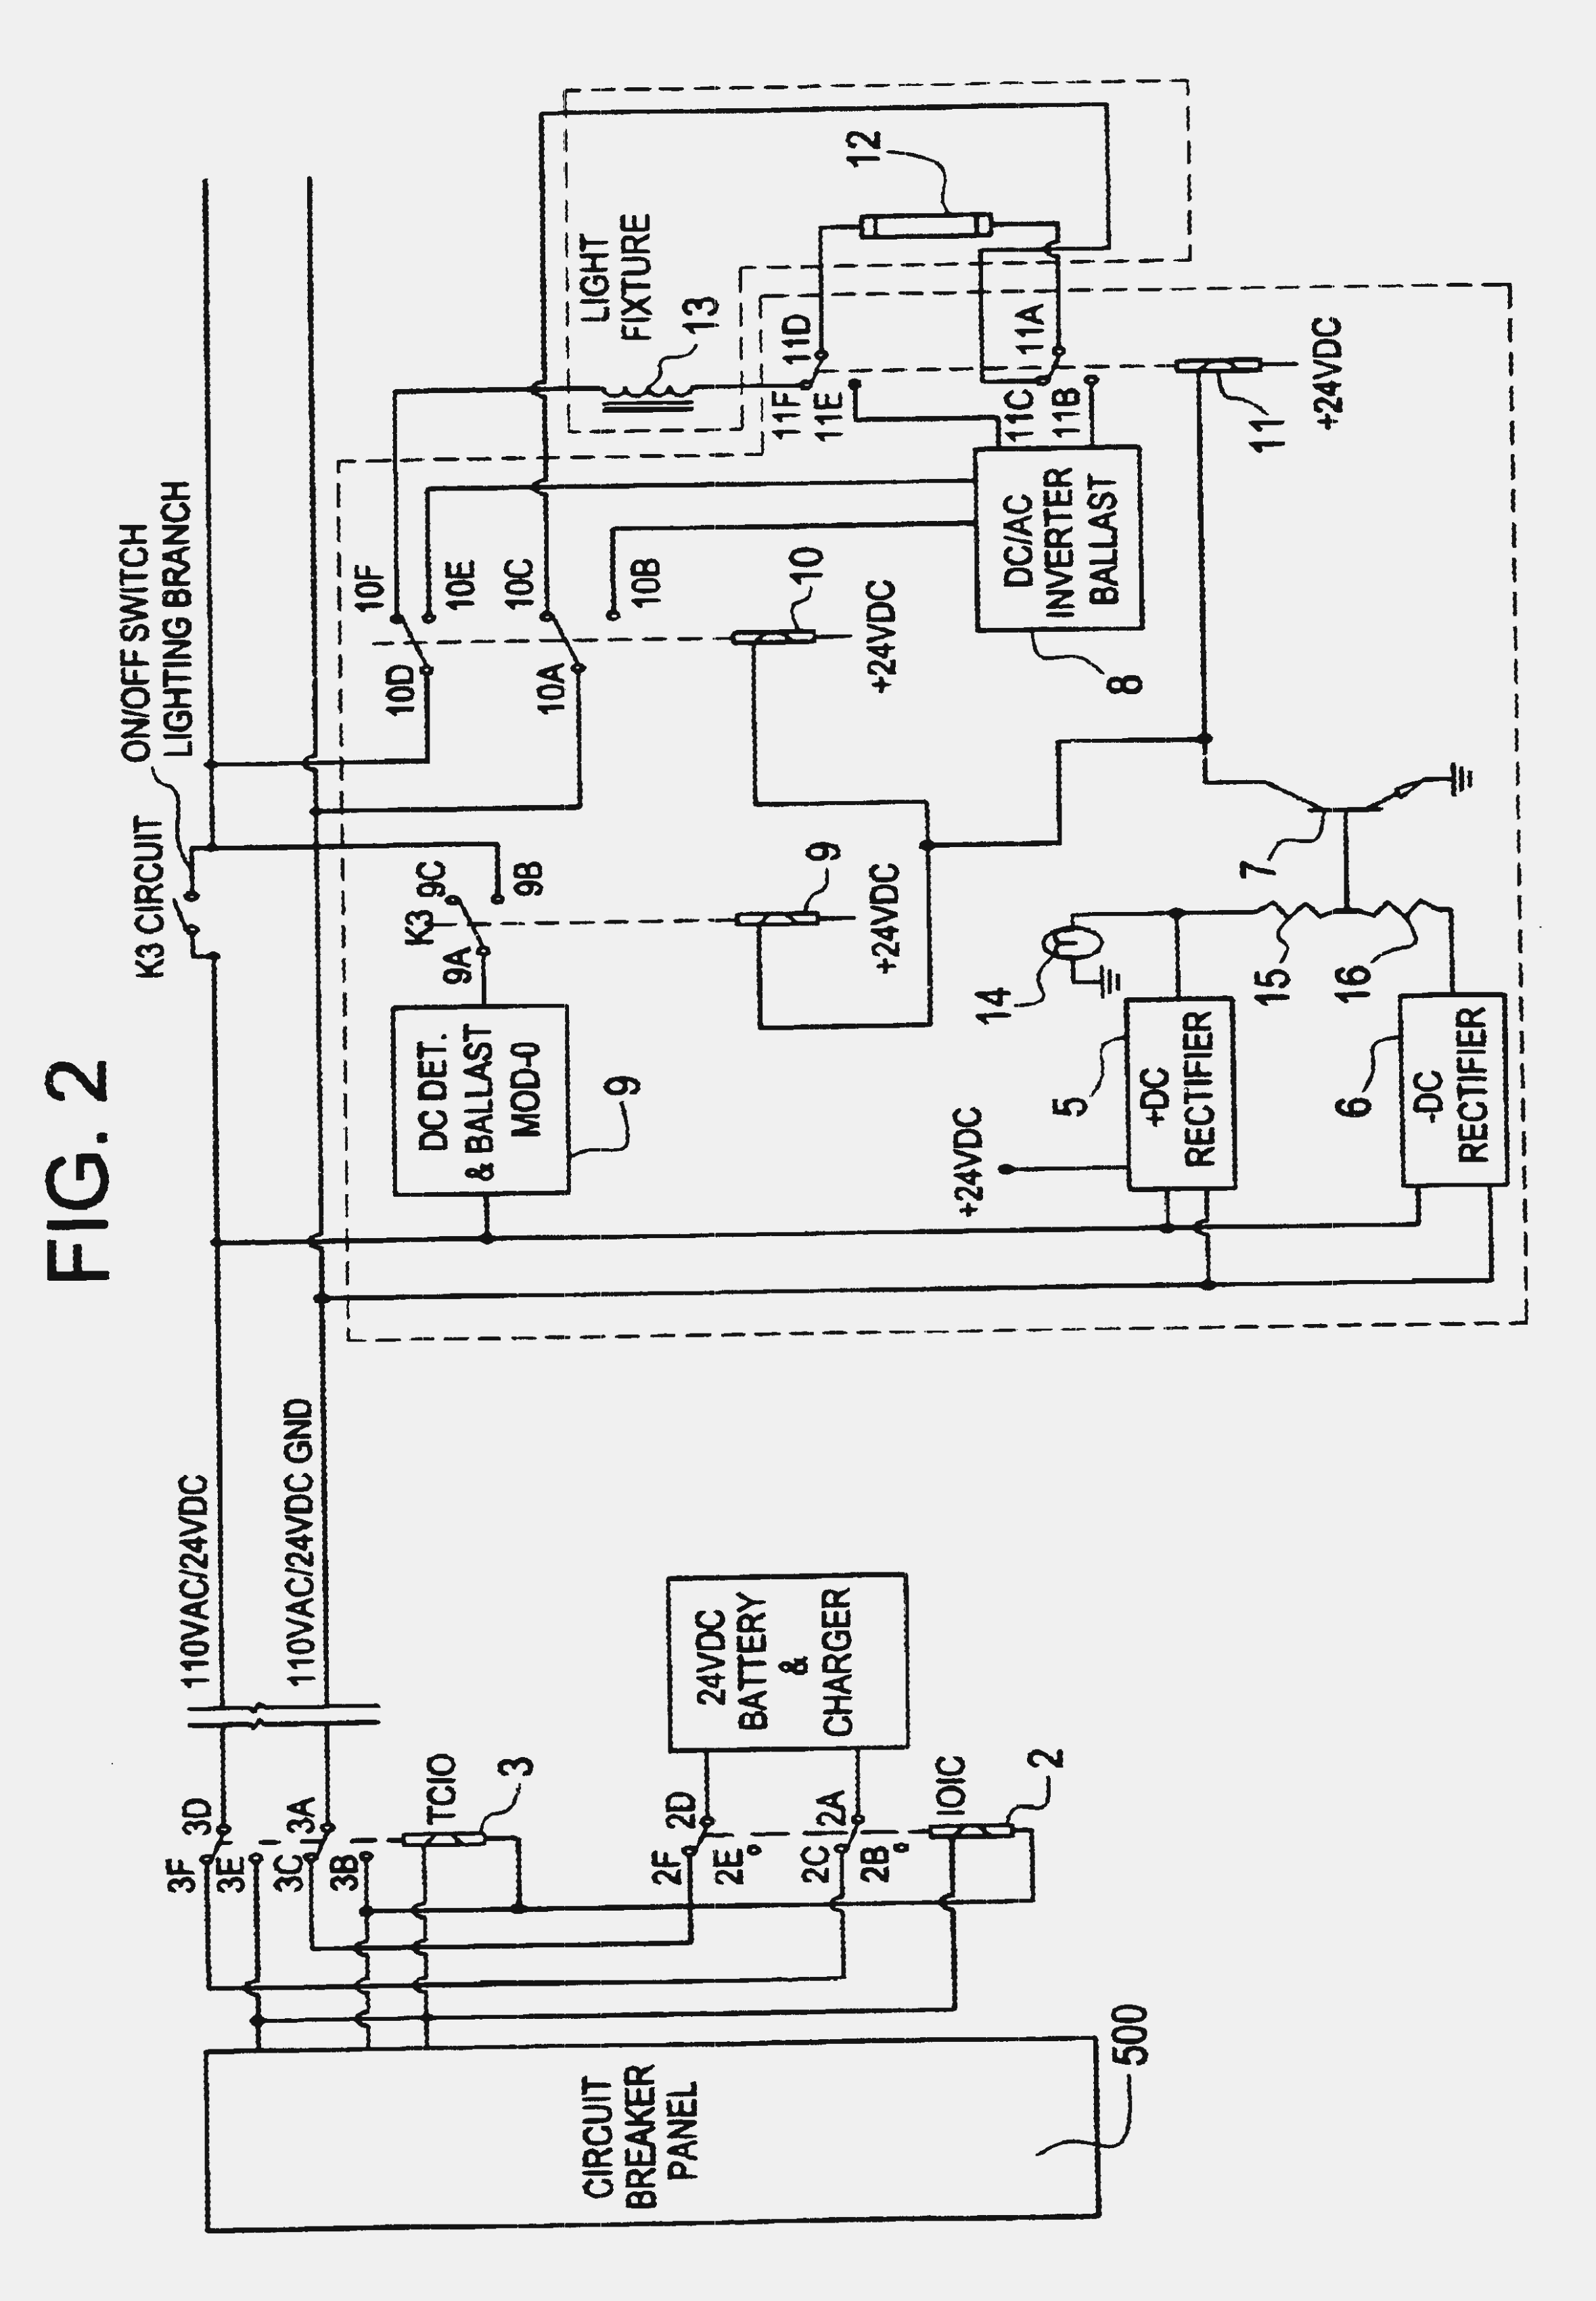 Unique Wiring Diagram for Can Lights #diagrams #